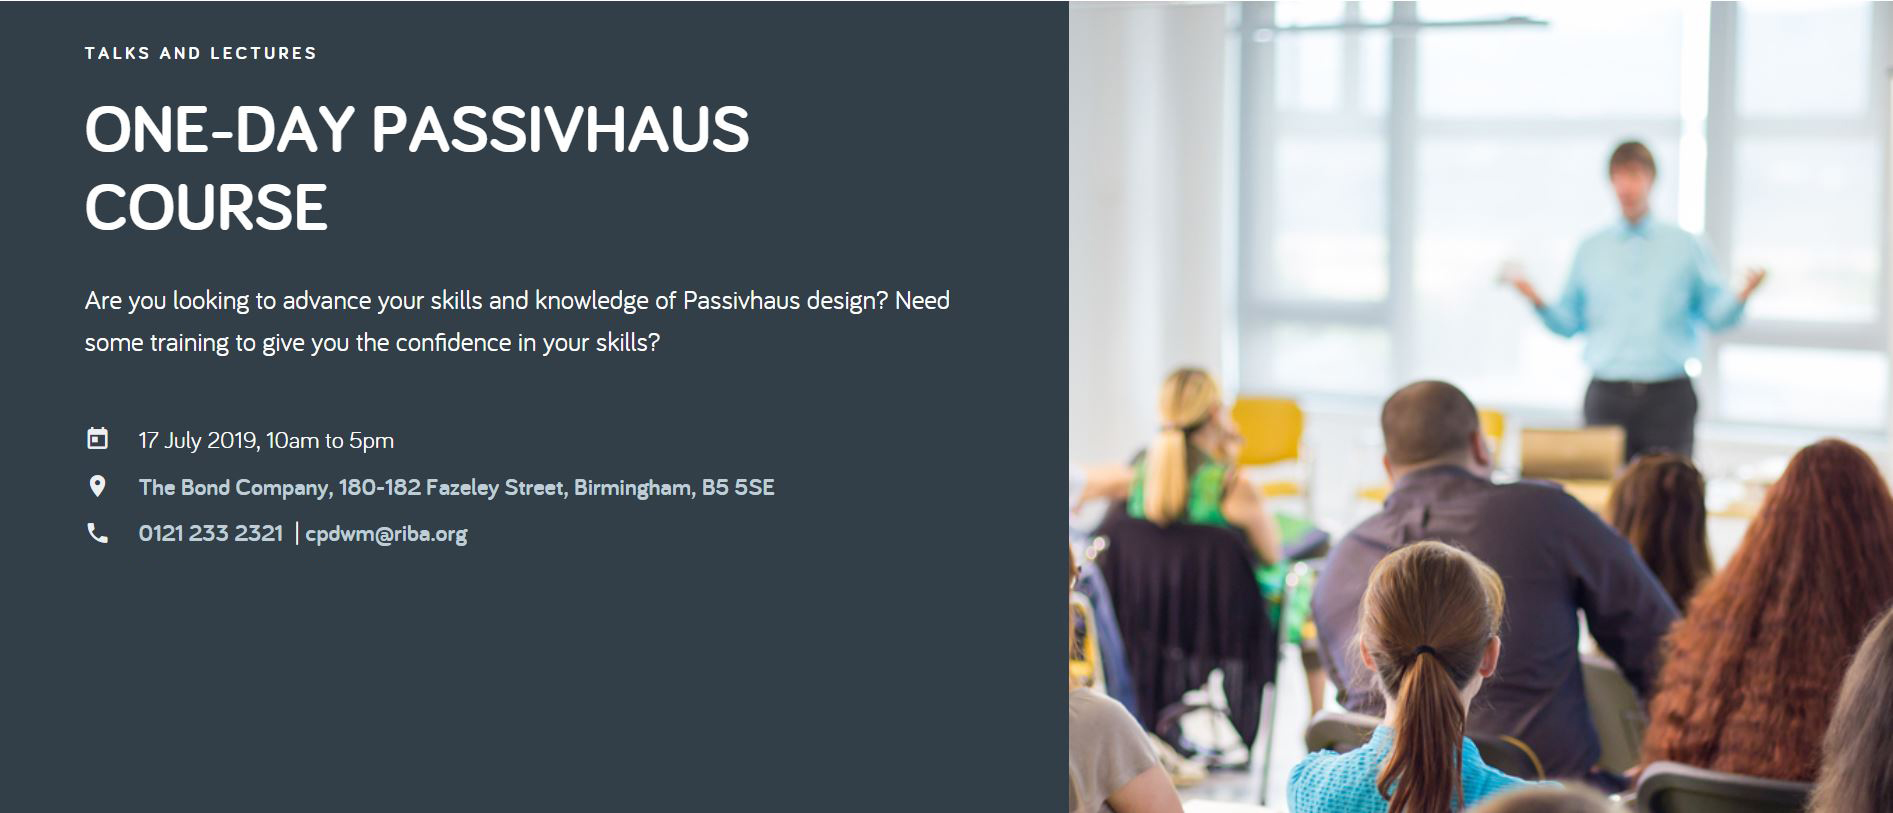 One Day Passivhaus Course 2019